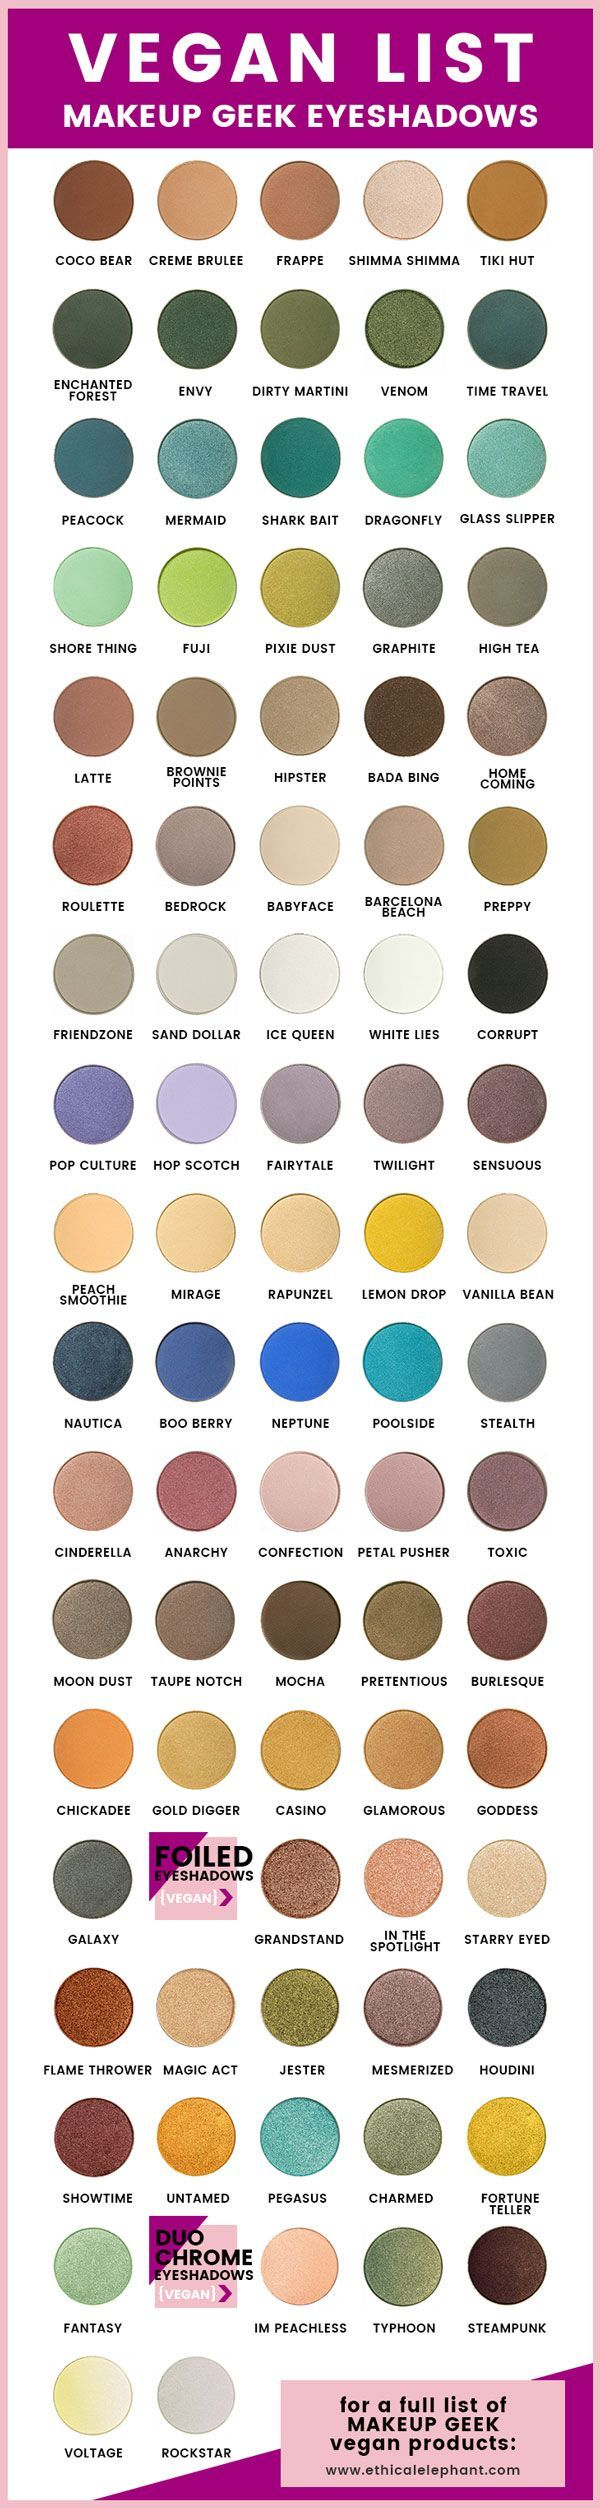 Makeup Geek Vegan Product List [Vicky from www.ethicalelephant.com put together this awesome list! It is so useful! A full list of Makeup Geek's vegan products is available on her site.] #Geeks